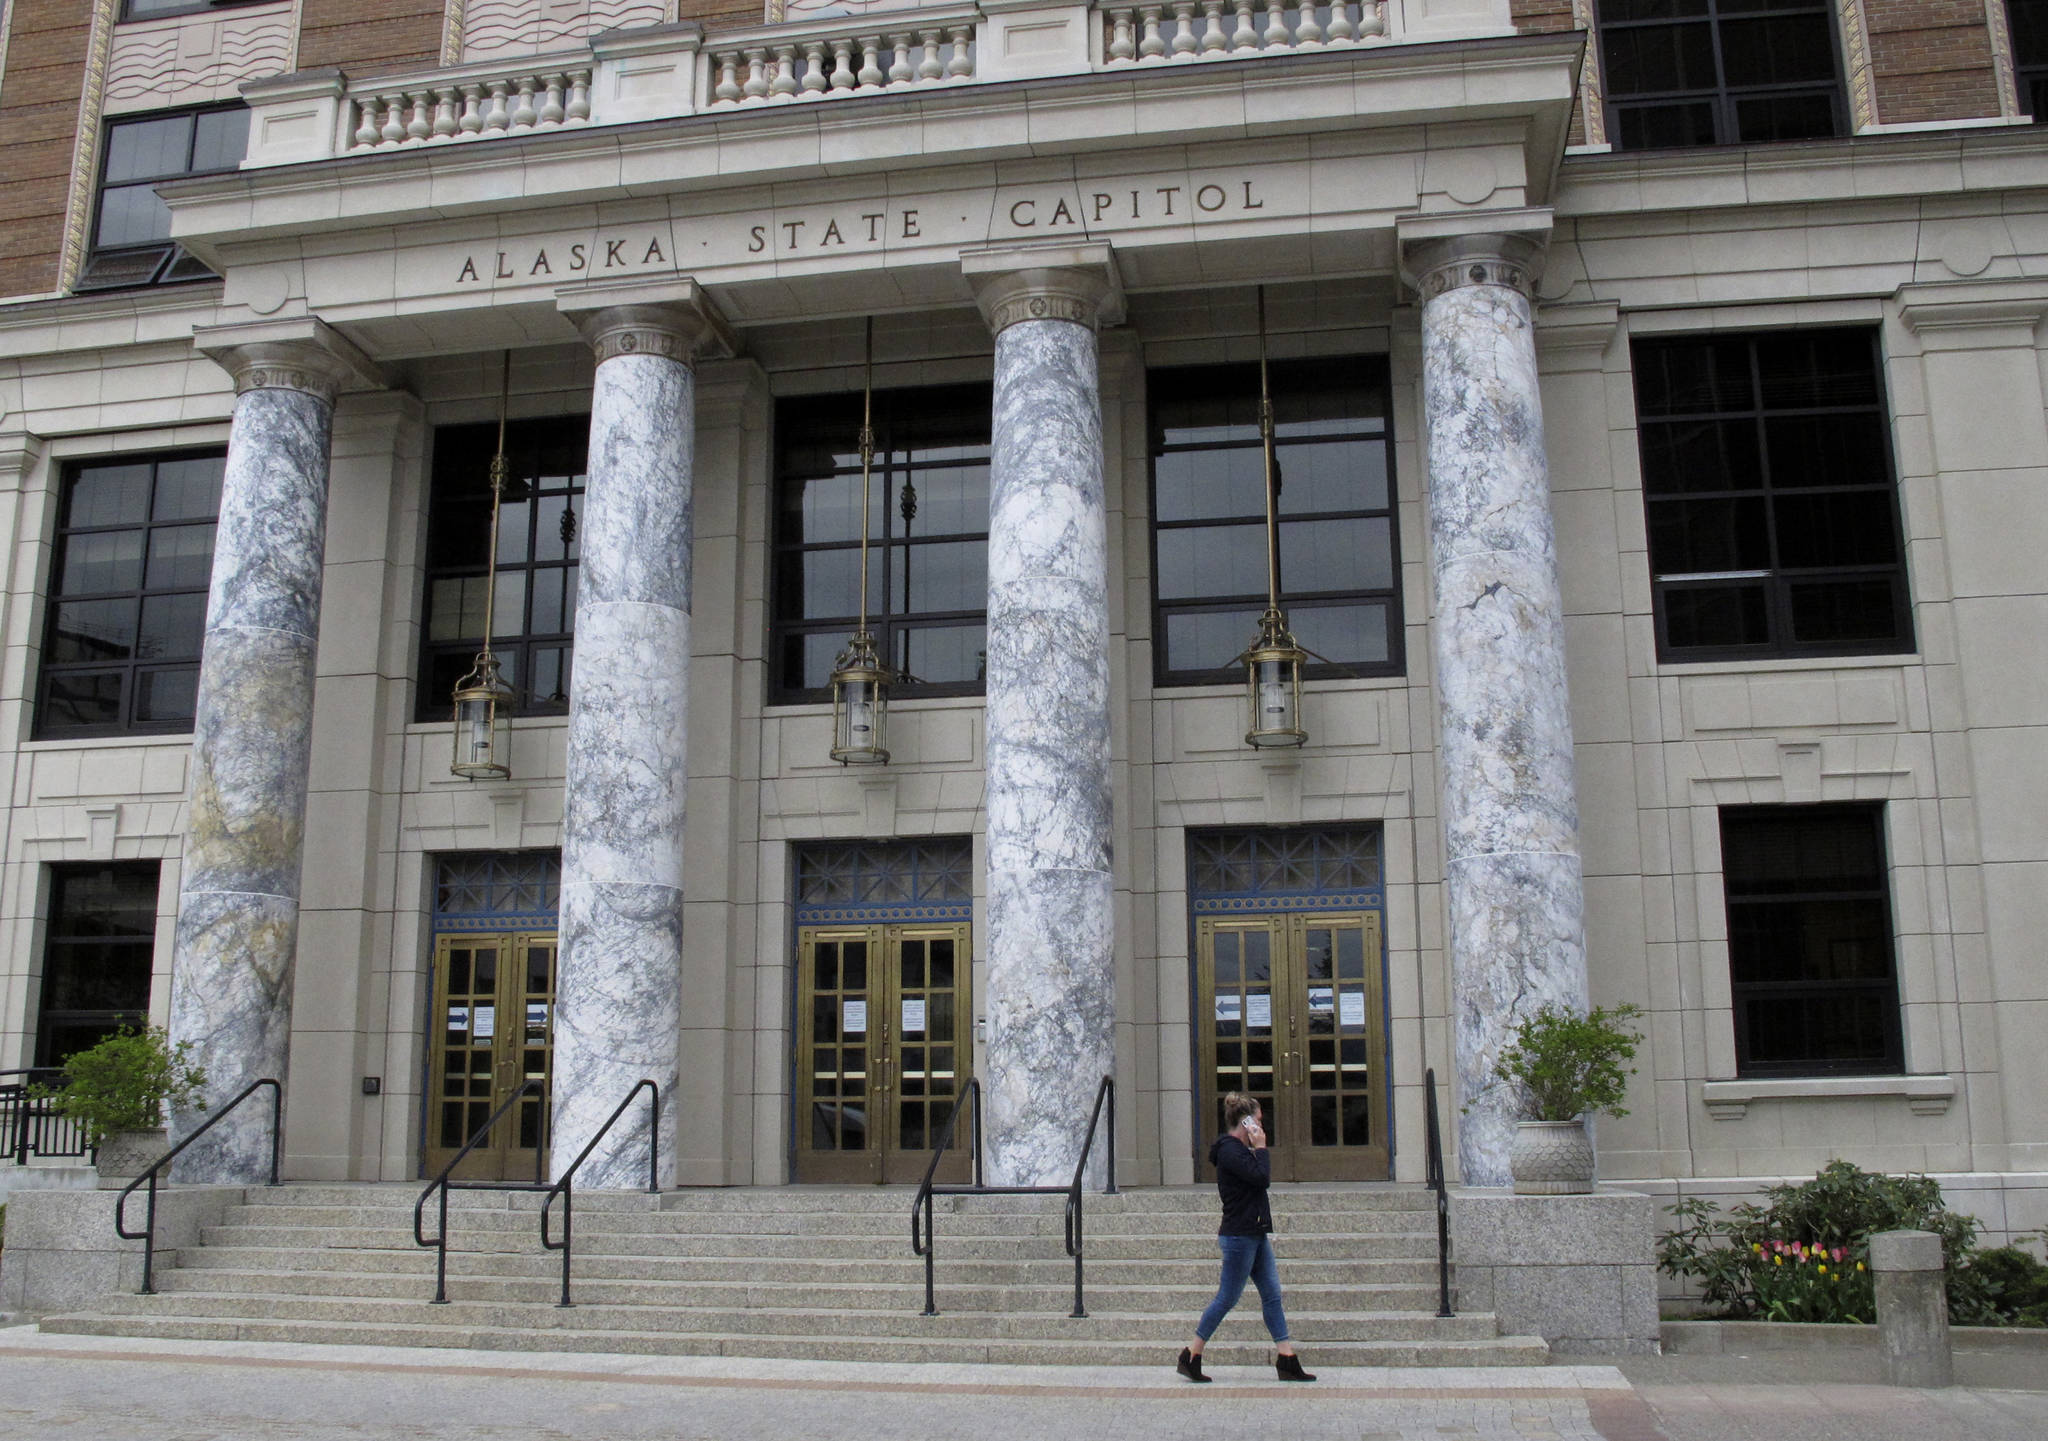 A woman walks past the Alaska Capitol in Juneau. Alaska lawmakers are set to convene amid a near decade-long run of deficits and economic fallout from the ongoing coronavirus pandemic. Go-to reserve accounts are depleted, and tough decisions await on how to use the state's nest-egg oil-wealth fund. It's unclear who will lead those debates: neither the House nor the Senate has organized. (AP Photo / Becky Bohrer)